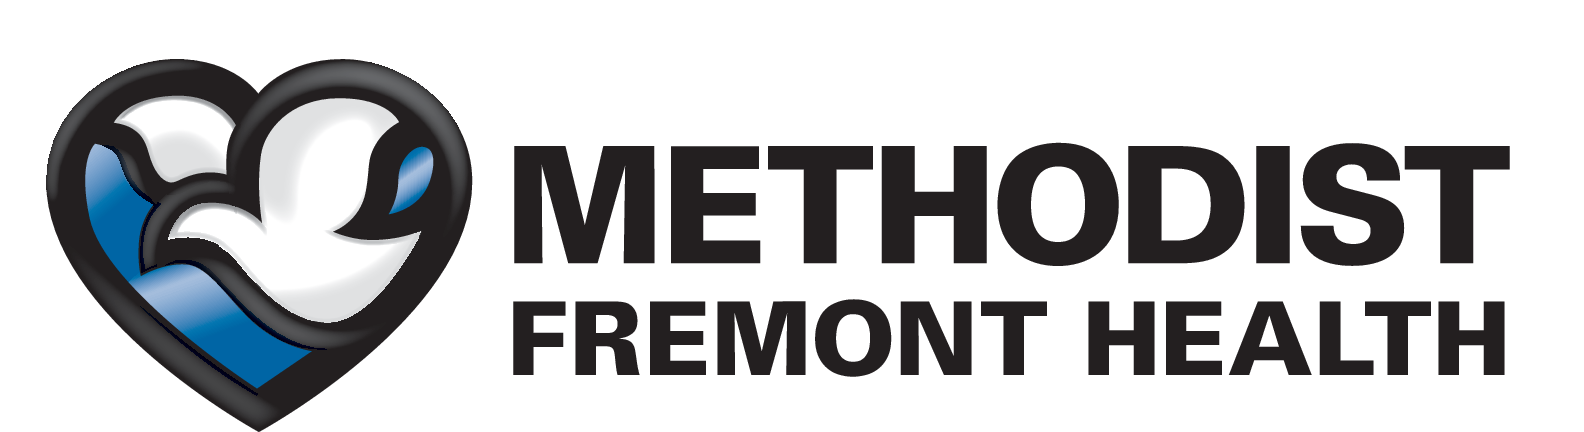 methodist fremont health, cancer care - fremont - Fremont Health's cancer program has earned Accreditation with Commendation, the highest level of recognition given by the American College of Surgeons' Commission on Cancer (CoC). Only seven percent of hospitals in the country can claim this honor.